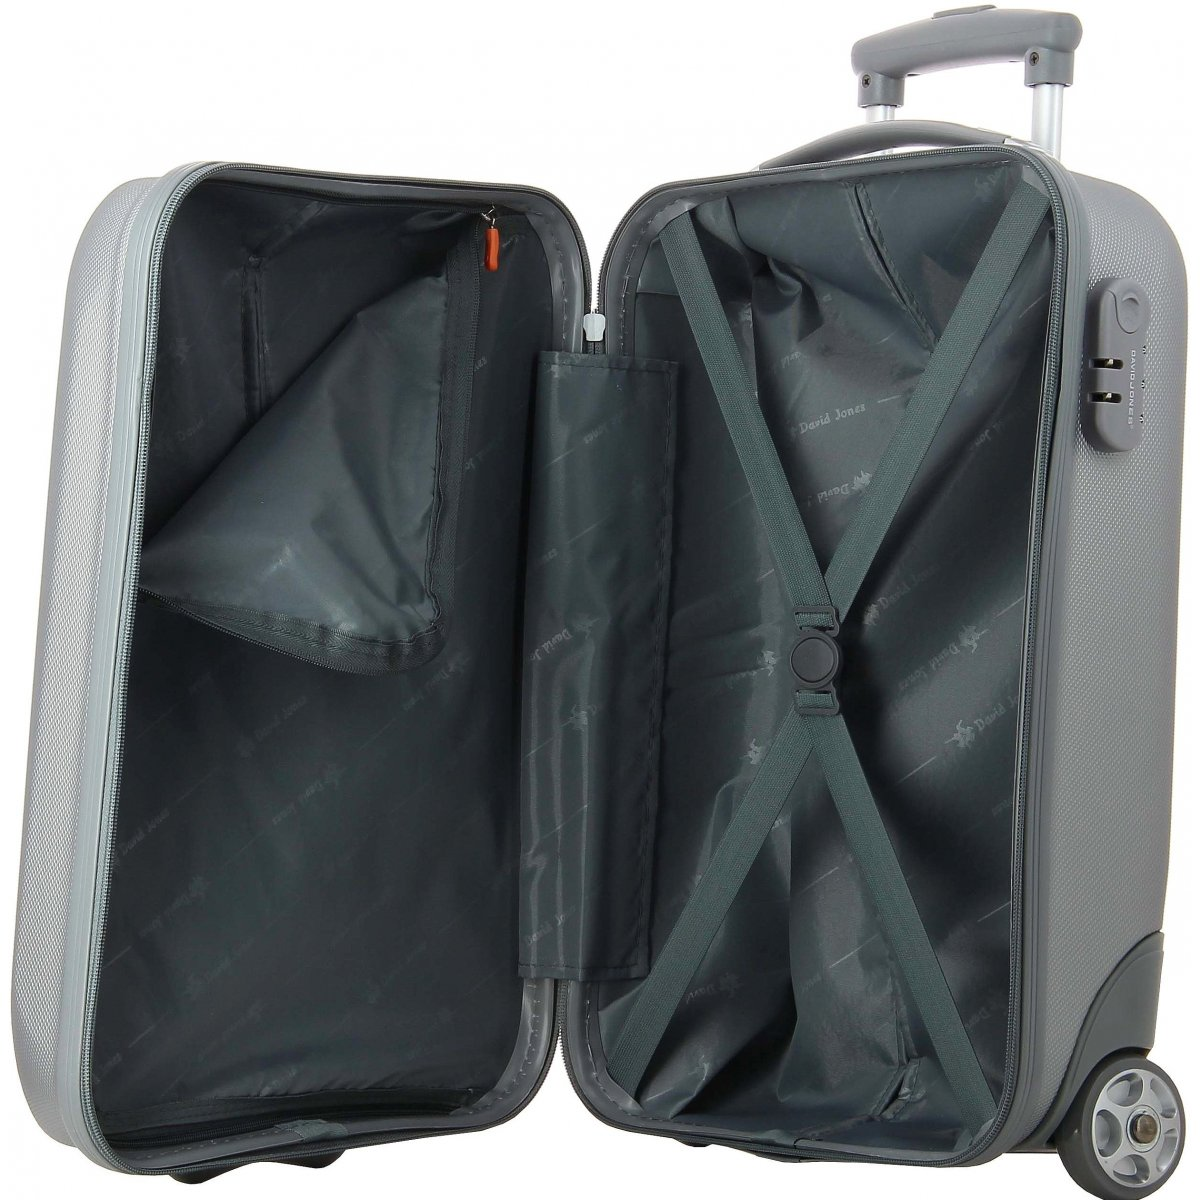 valise cabine ryanair david jones ba10021 couleur principale silver solde. Black Bedroom Furniture Sets. Home Design Ideas